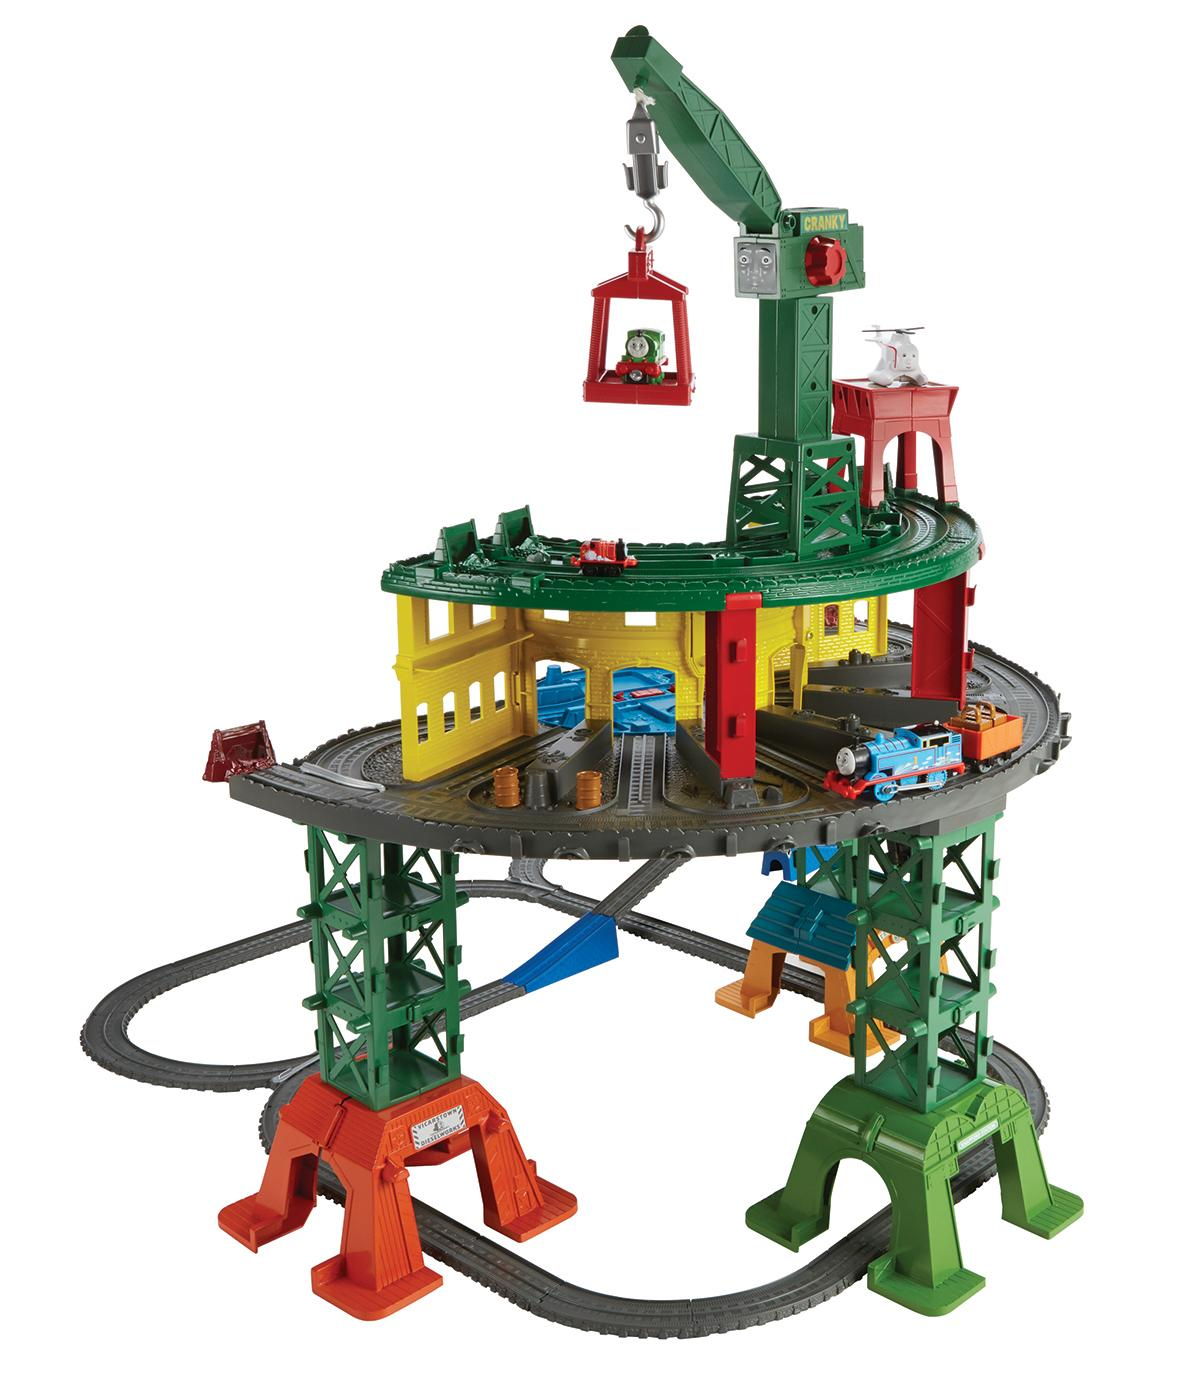 Thomas & Friends Super Station/Photo courtesy of the Toy Insider